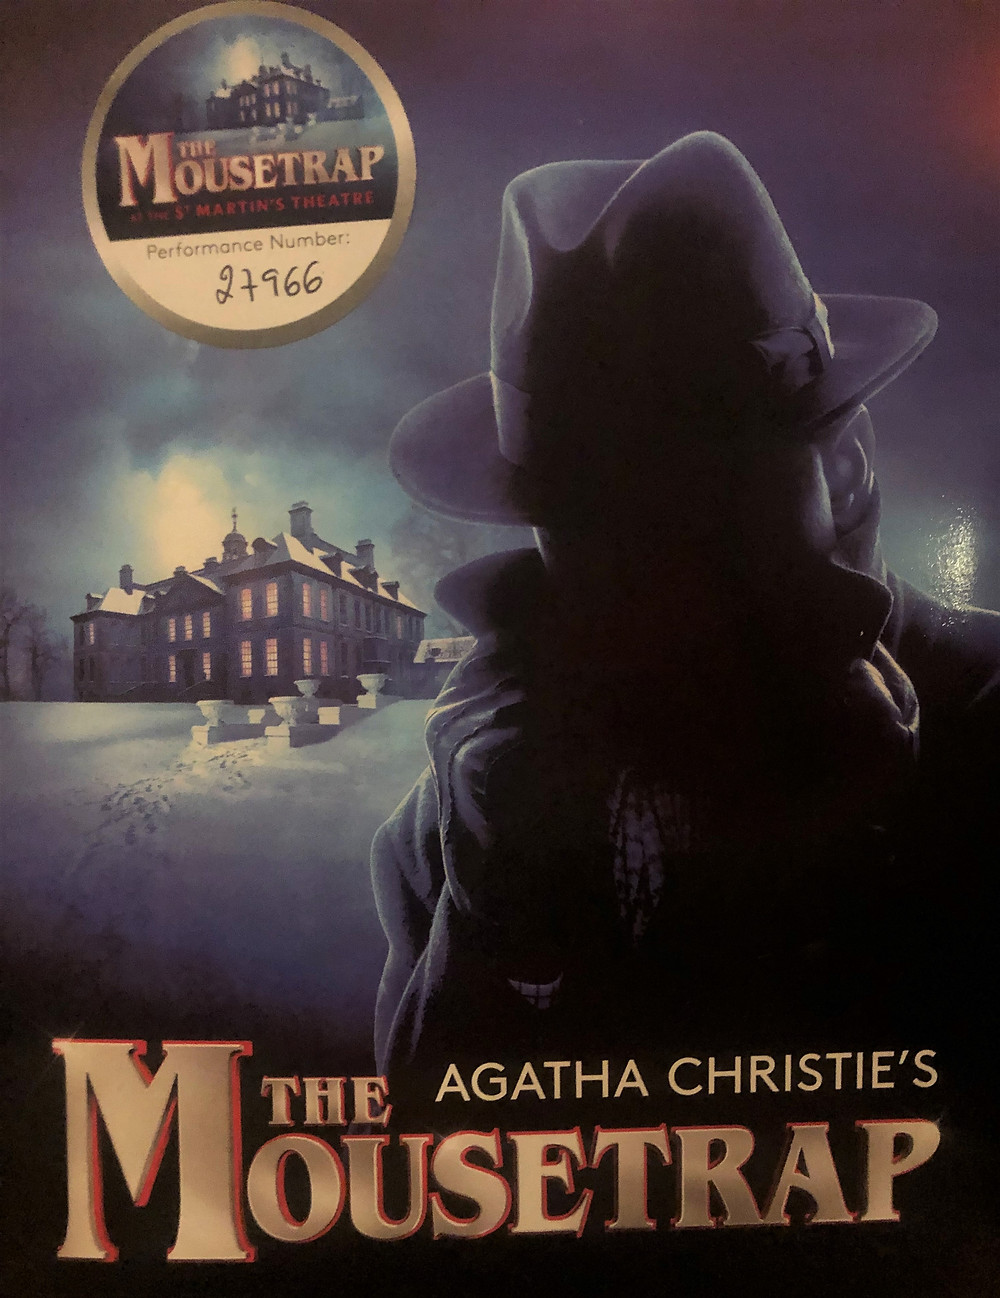 Souvenir playbook for Agatha Christie's play The Mousetrap.  Performance number 27,966